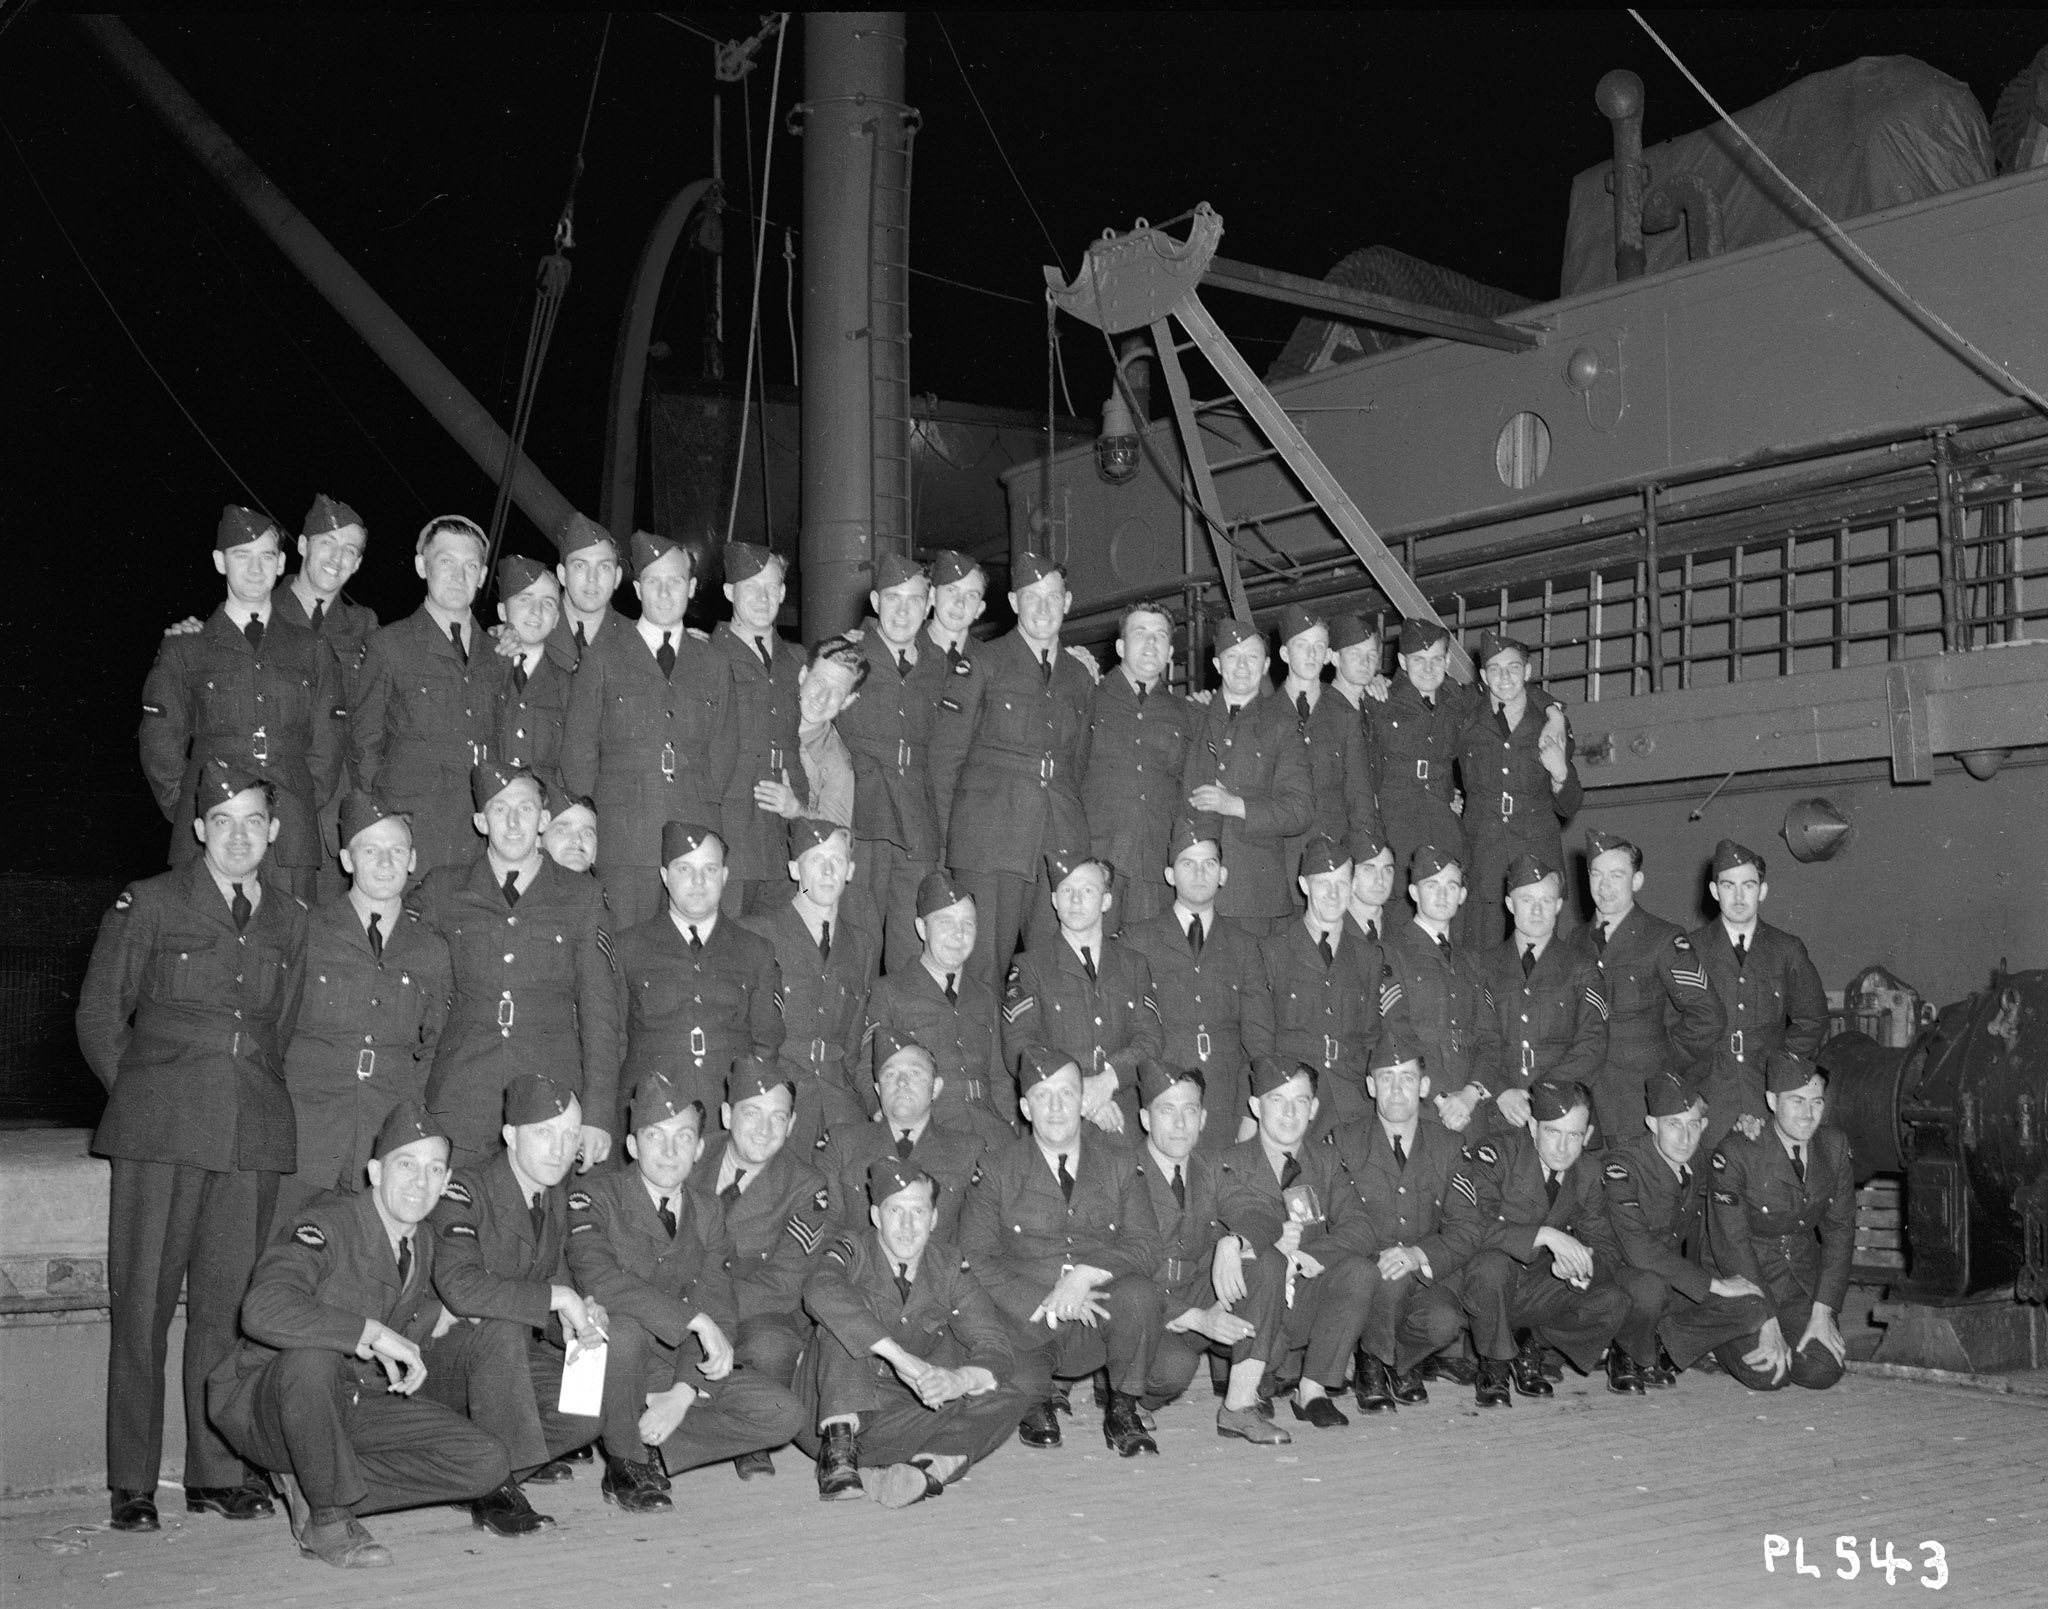 Members of No. 1 Squadron on board ship in Halifax, destined for Europe, on June 8, 1940.  PHOTO: DND Archives, PL-543